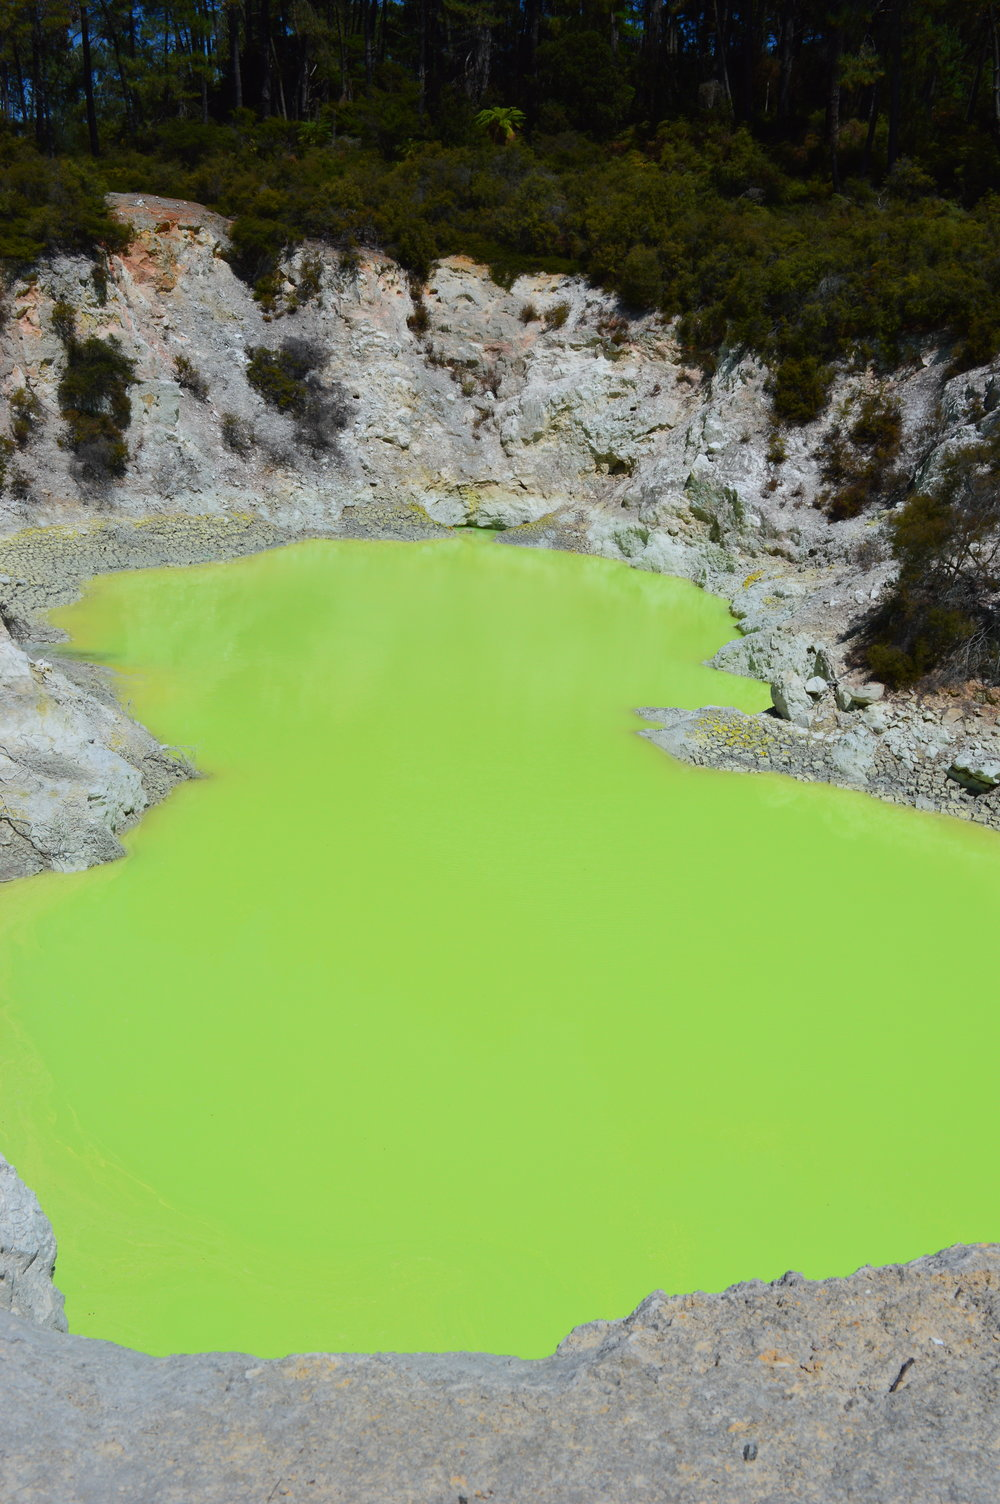 Green geothermal sulpherous pool